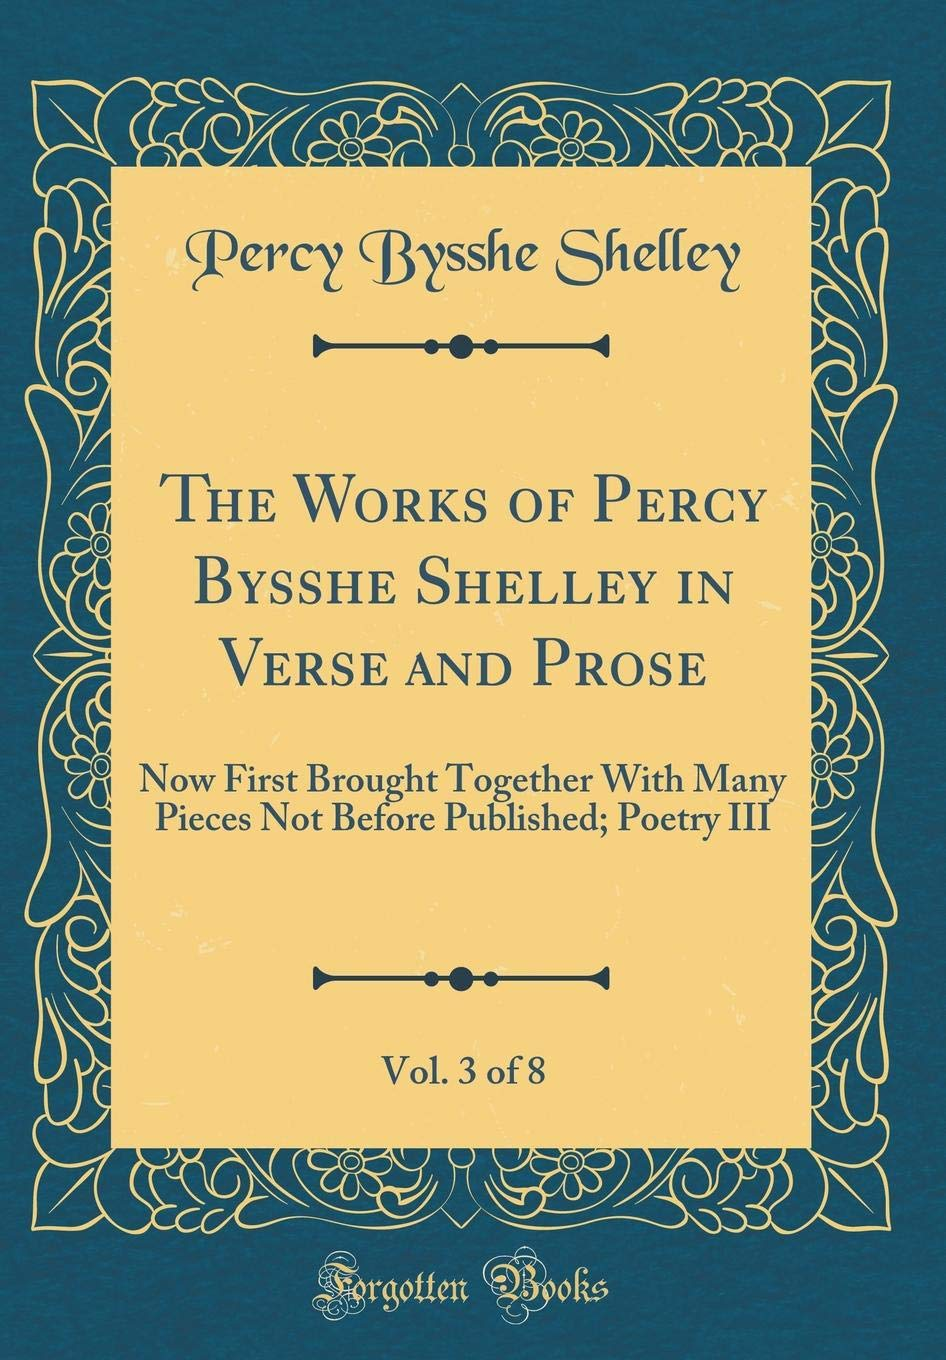 The Works of Percy Bysshe Shelley in Verse and Prose, Vol. 3 of 8: Now First Brought Together with Many Pieces Not Before Published; Poetry III (Classic Reprint) pdf epub